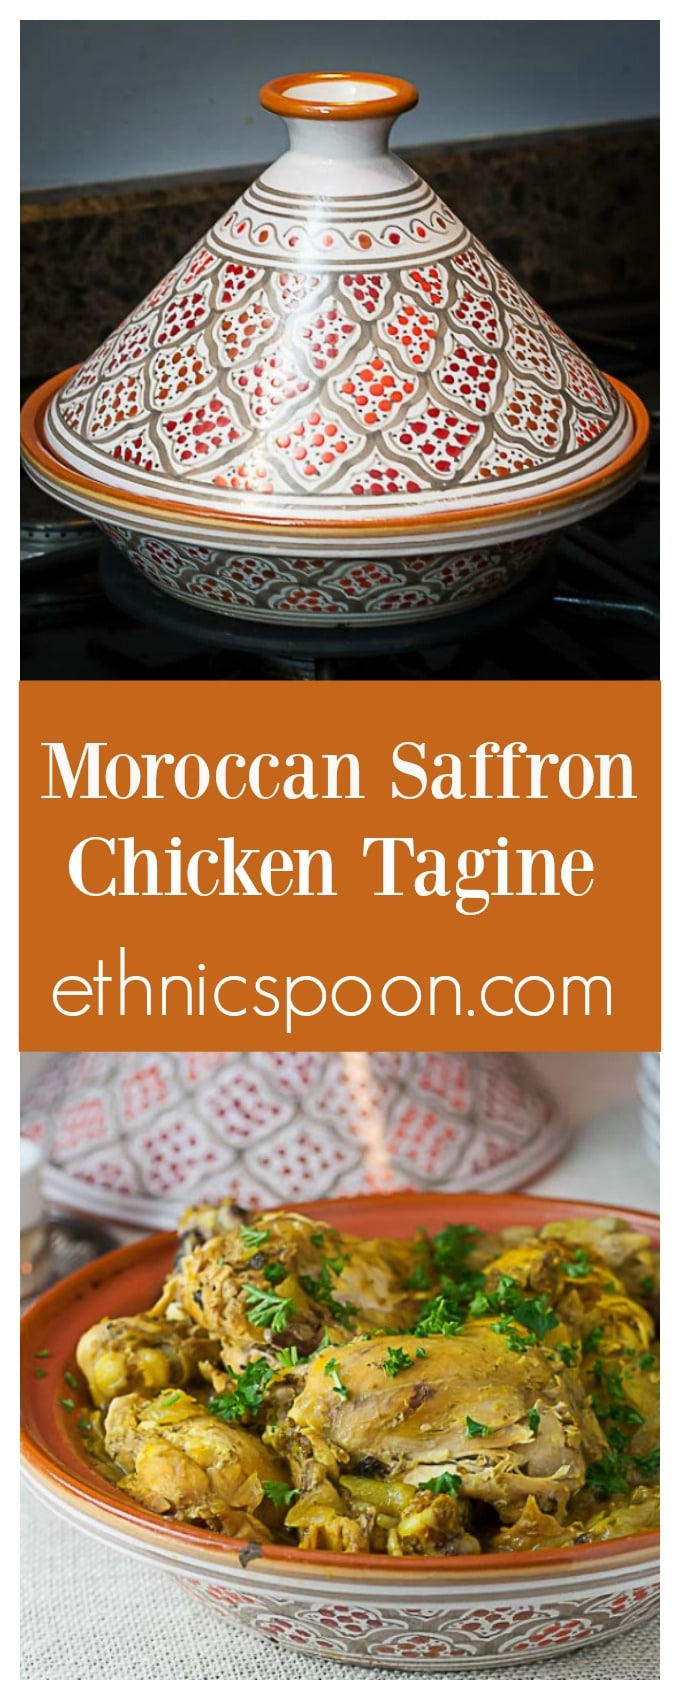 Try Moroccan Saffron Chicken Tagine is fragrant and warming. Make it in a crockpot or the traditional earthen vessel. ethnicspoon.com| #saffronchicken #africanfood #taginerecipes